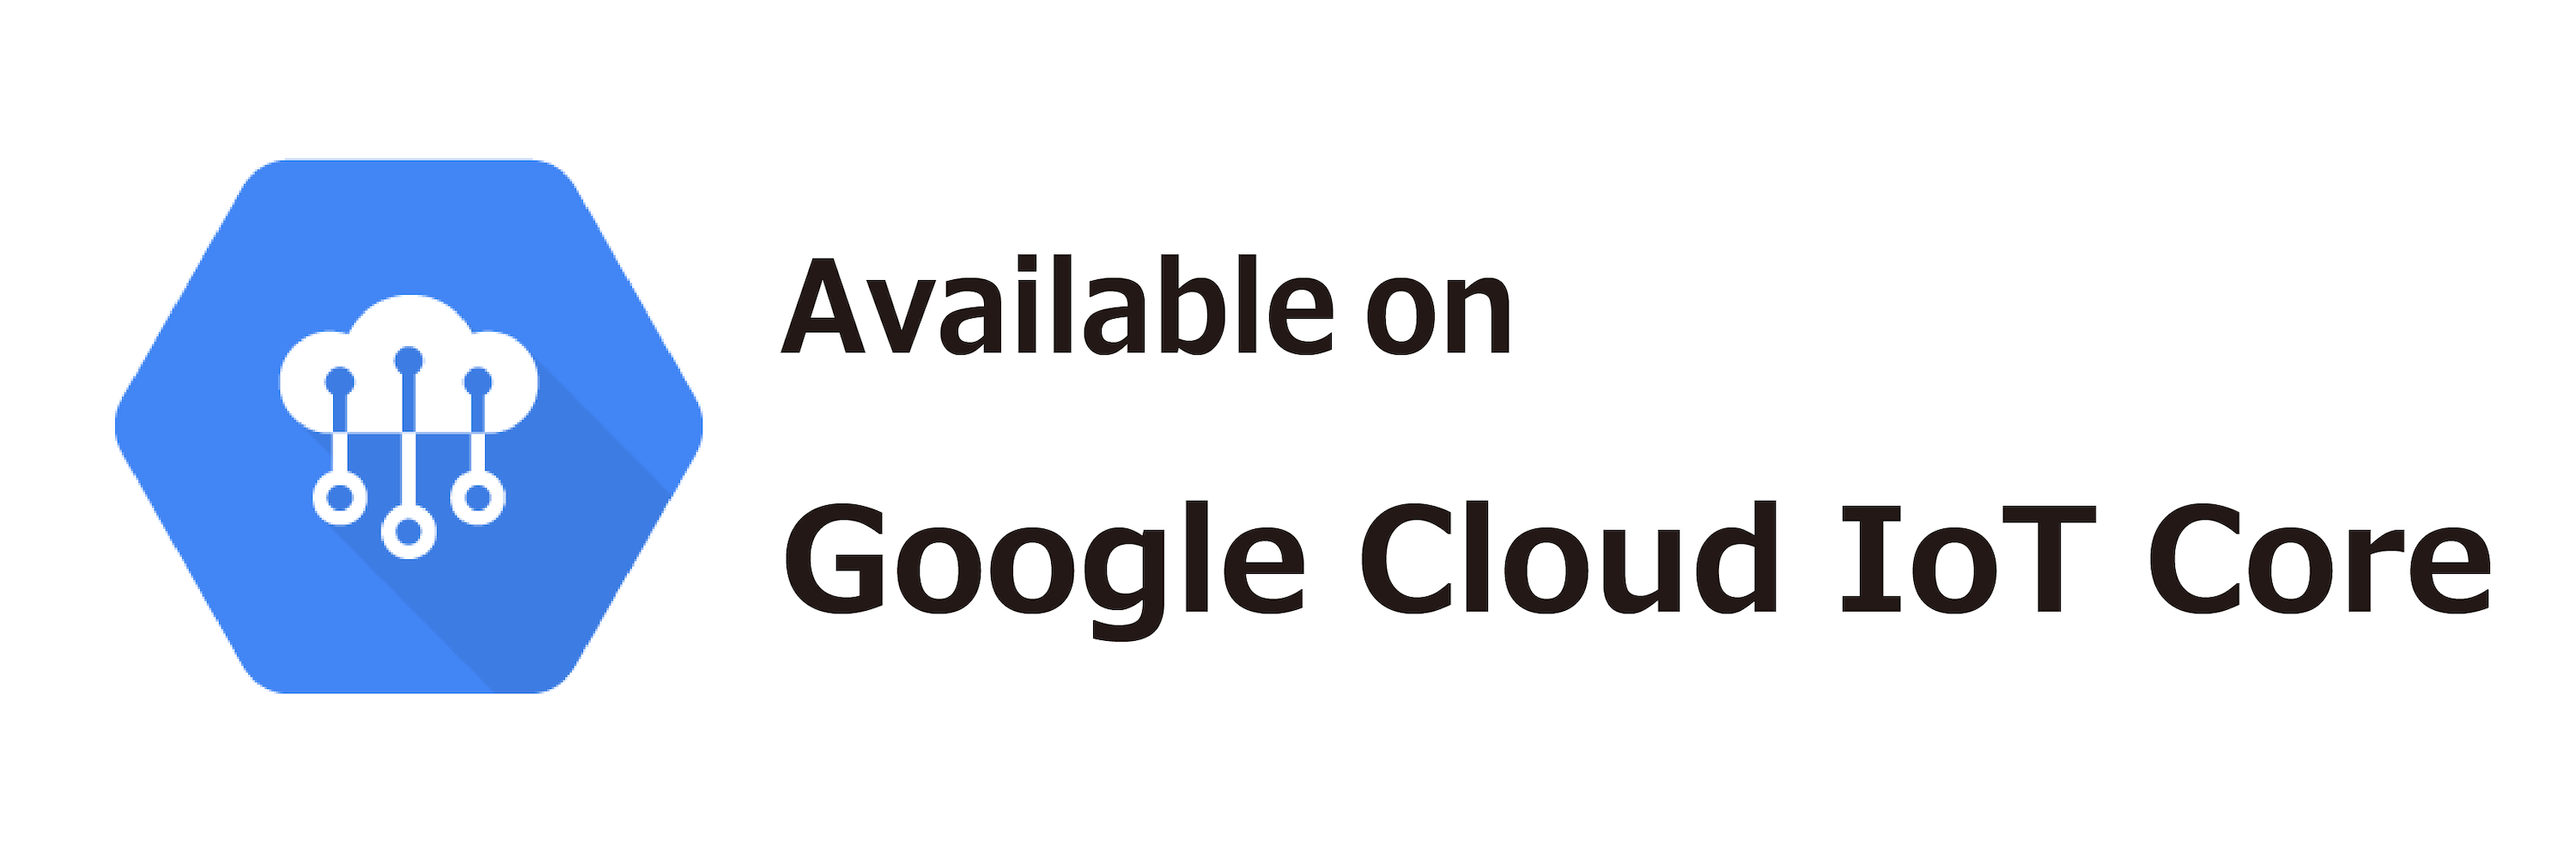 available on Google Cloud IoT Core